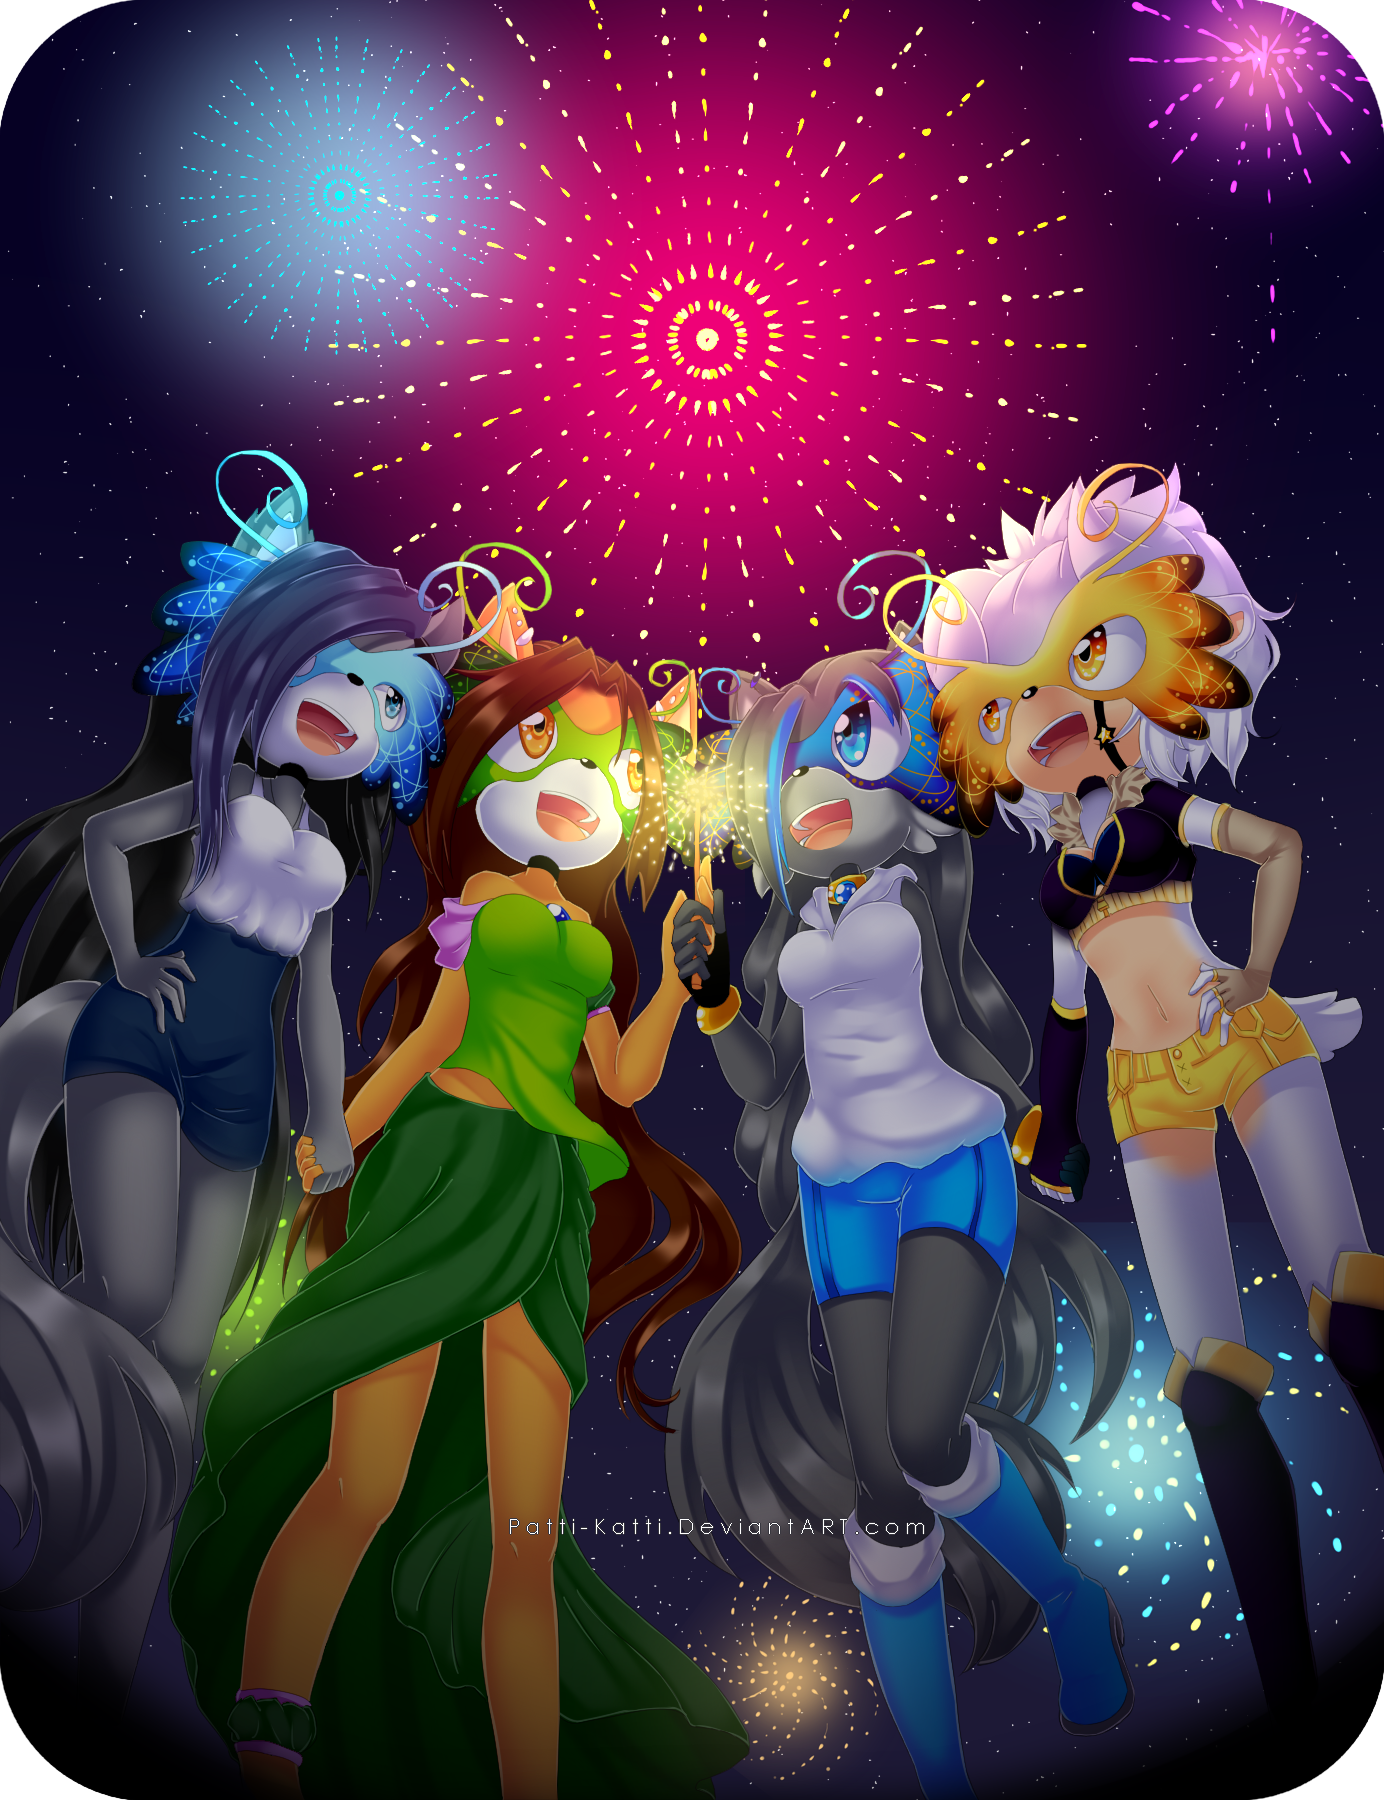 The New Year by Patti-Katti